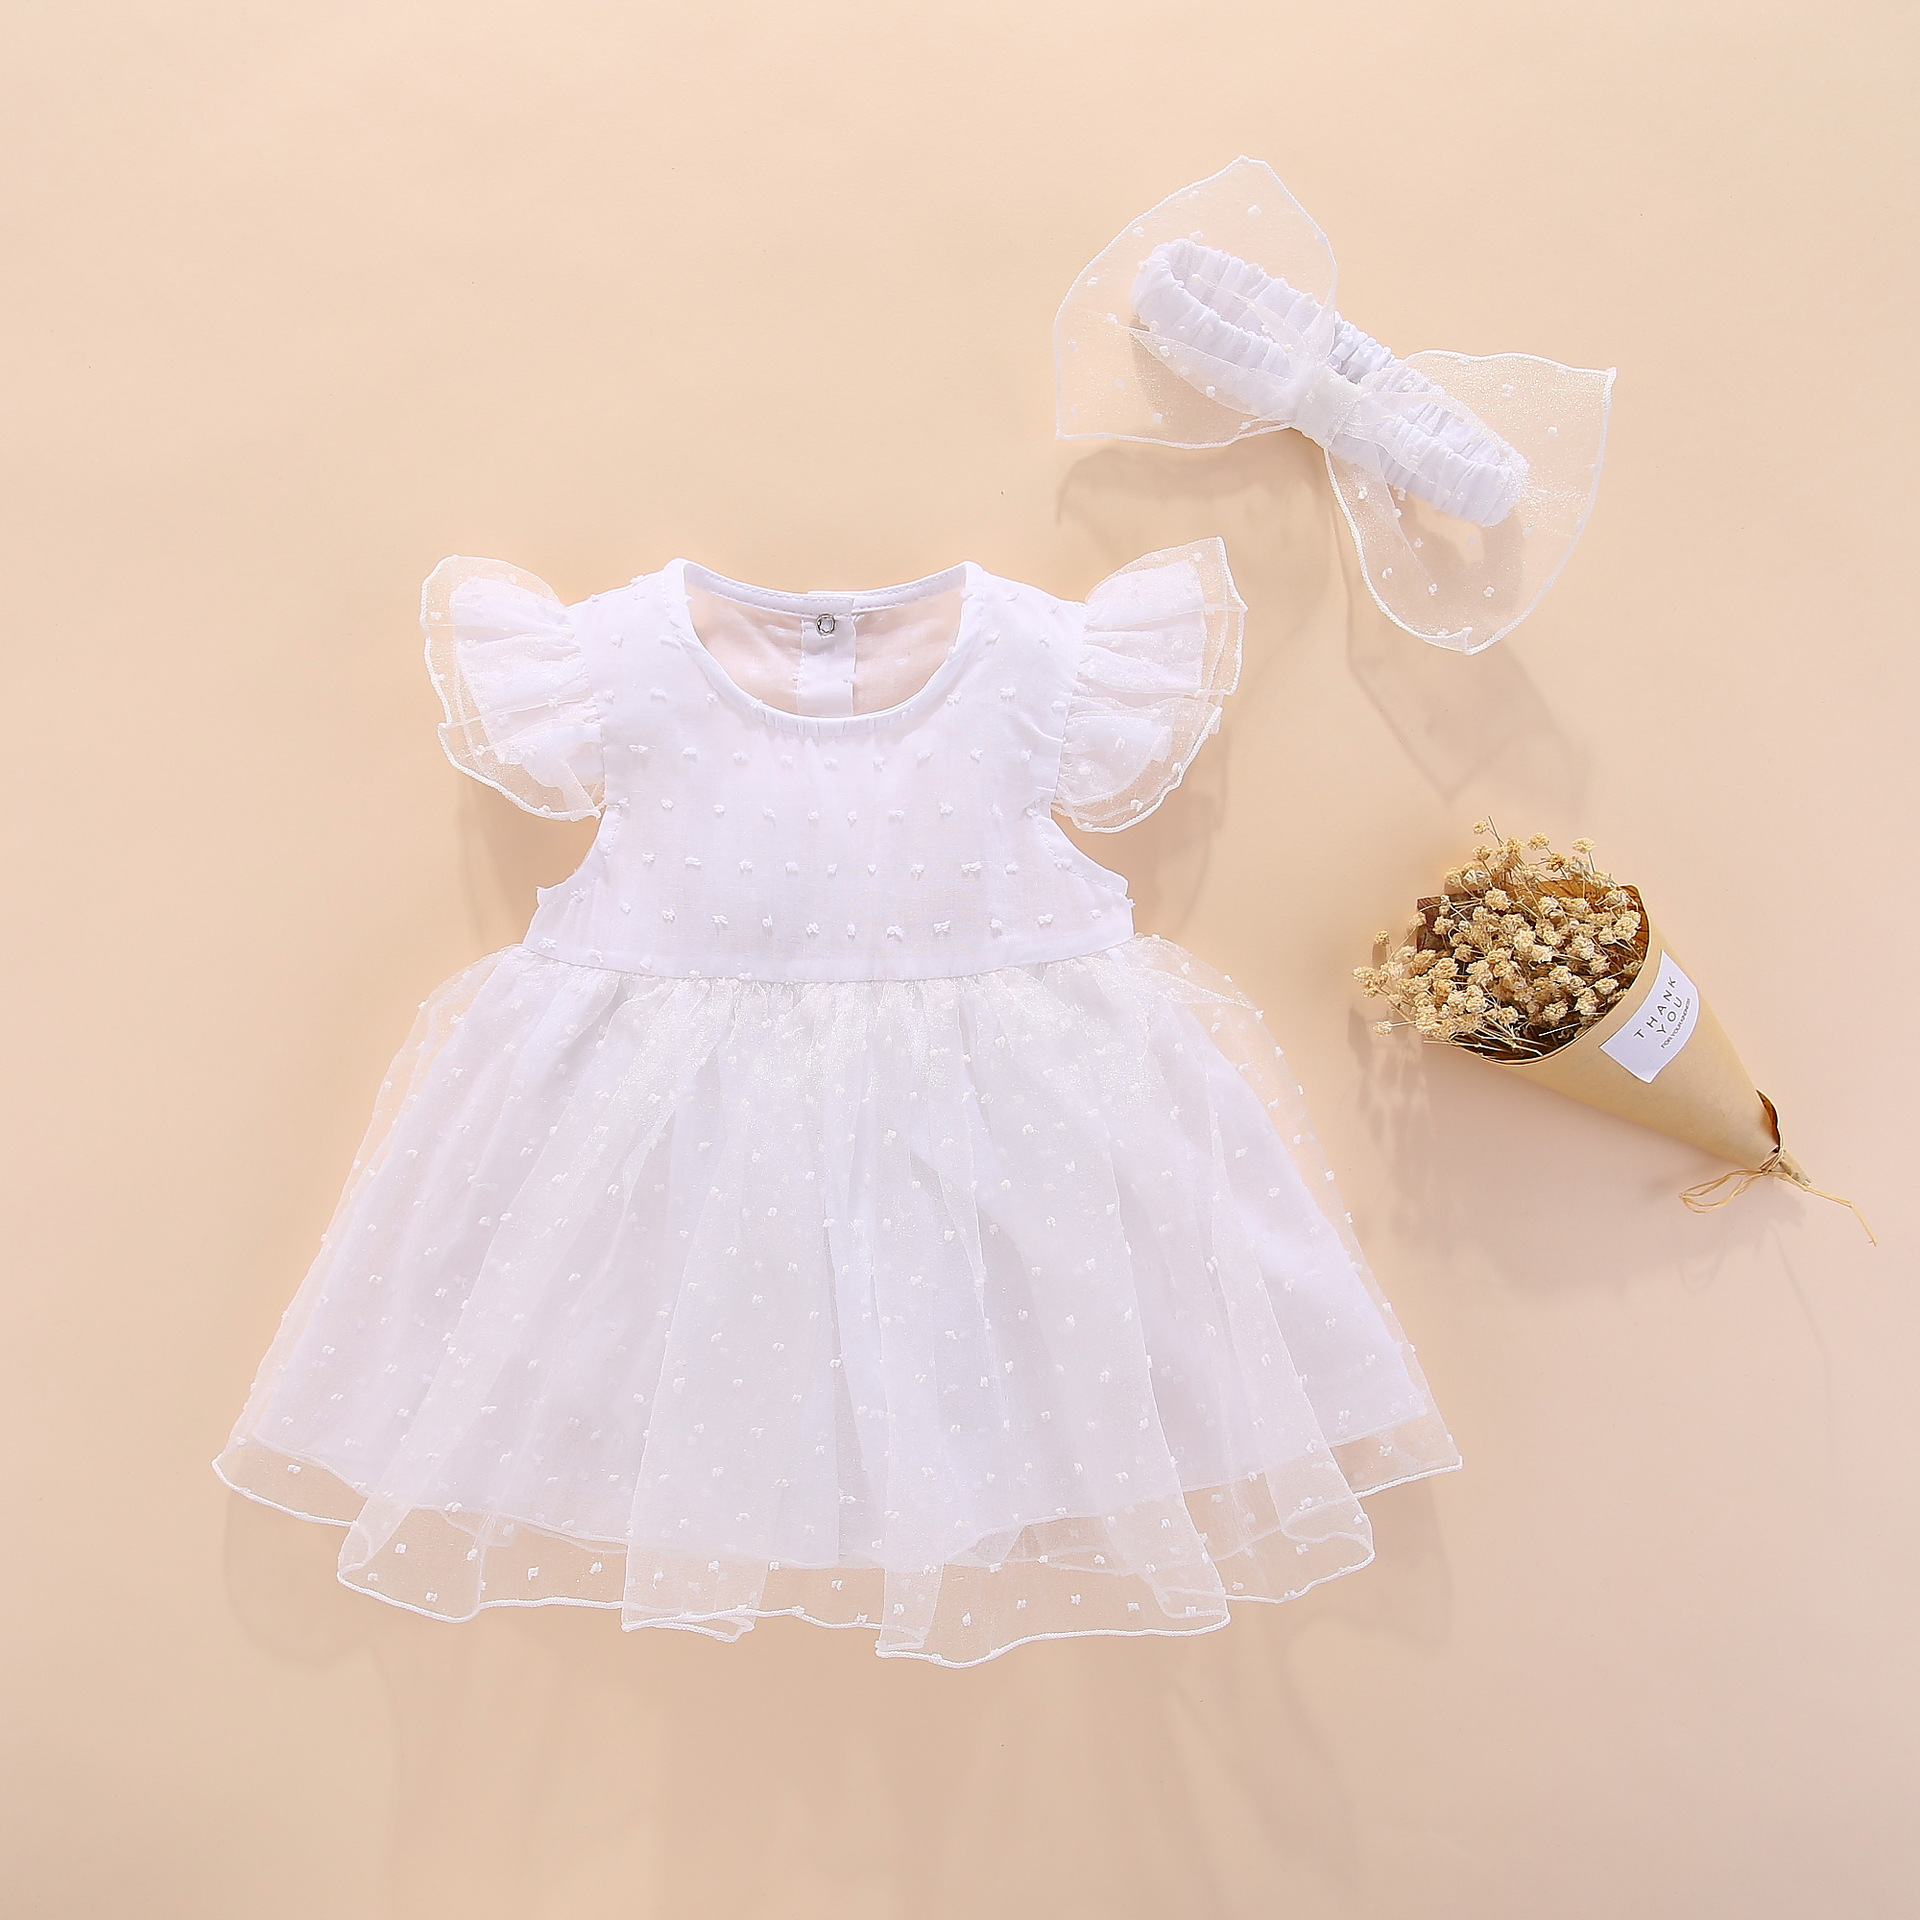 18m Various Sizes: Newborn 6m 12m 24m The Be Sweet White and Yellow Cupcake Baby Cotton Onesie Infant Rip Snap Tee